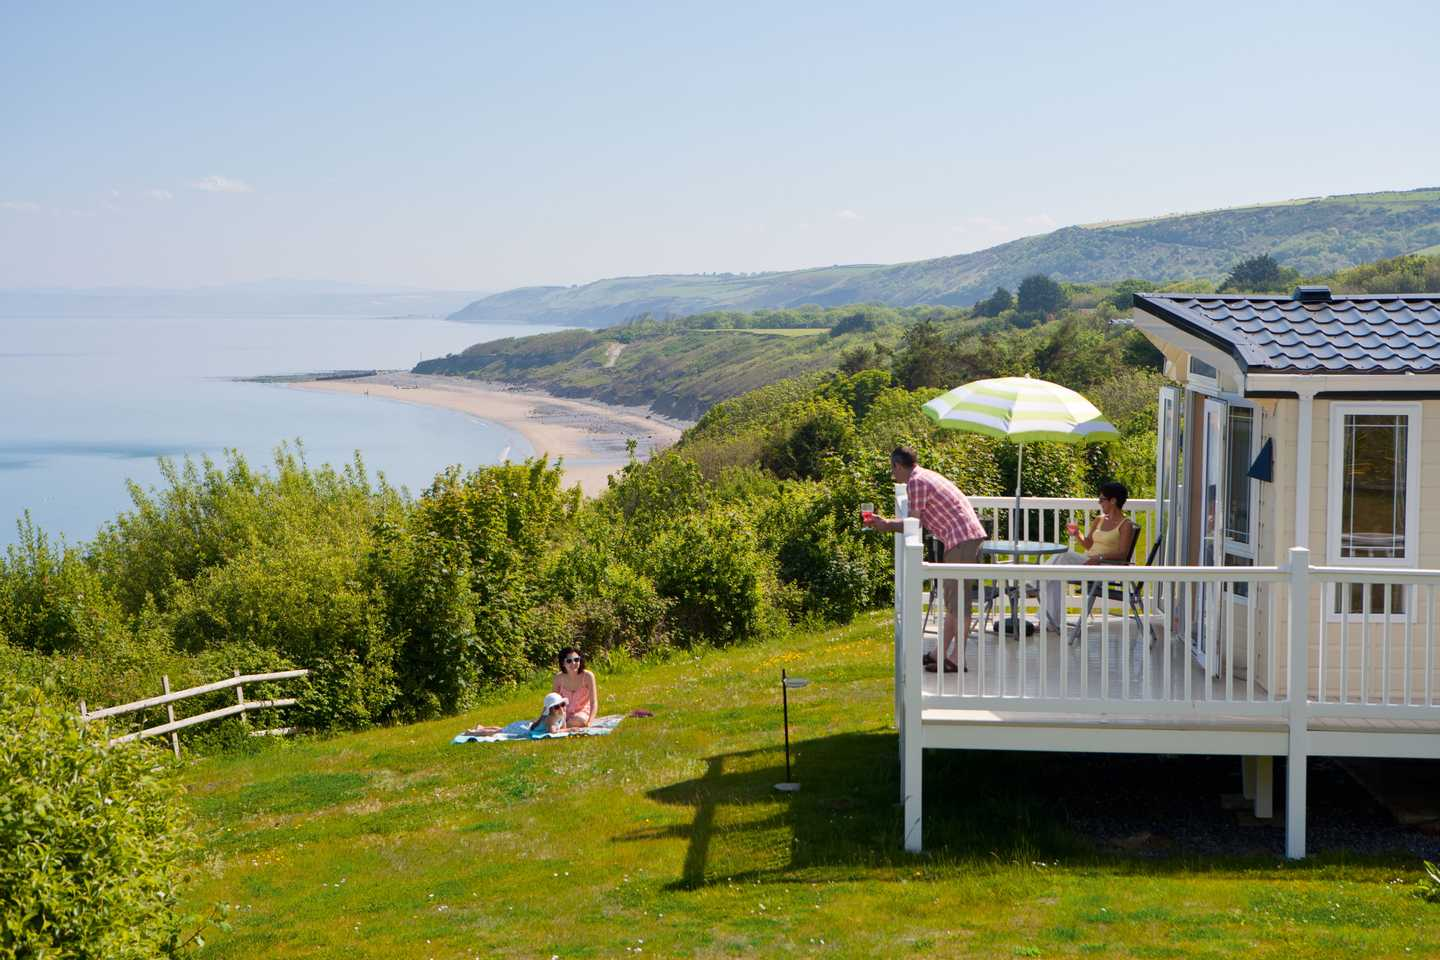 A view across the bay with clear blue skies at Quay West Holiday Park with a caravan and veranda in the foreground